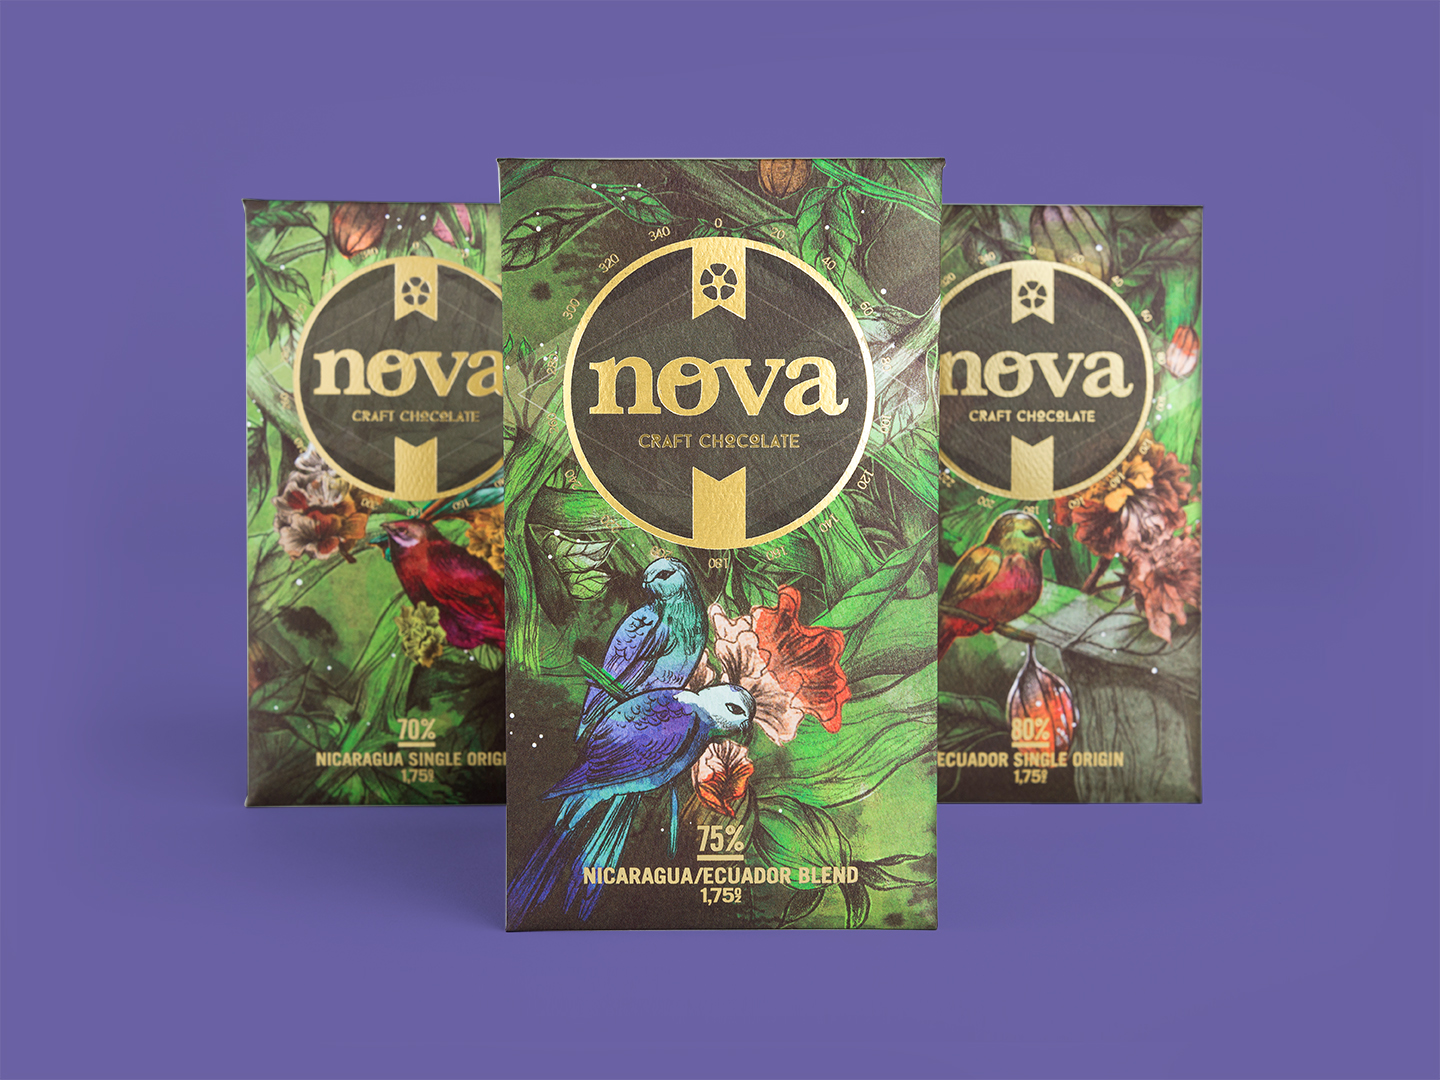 Nova Packaging 2.jpg